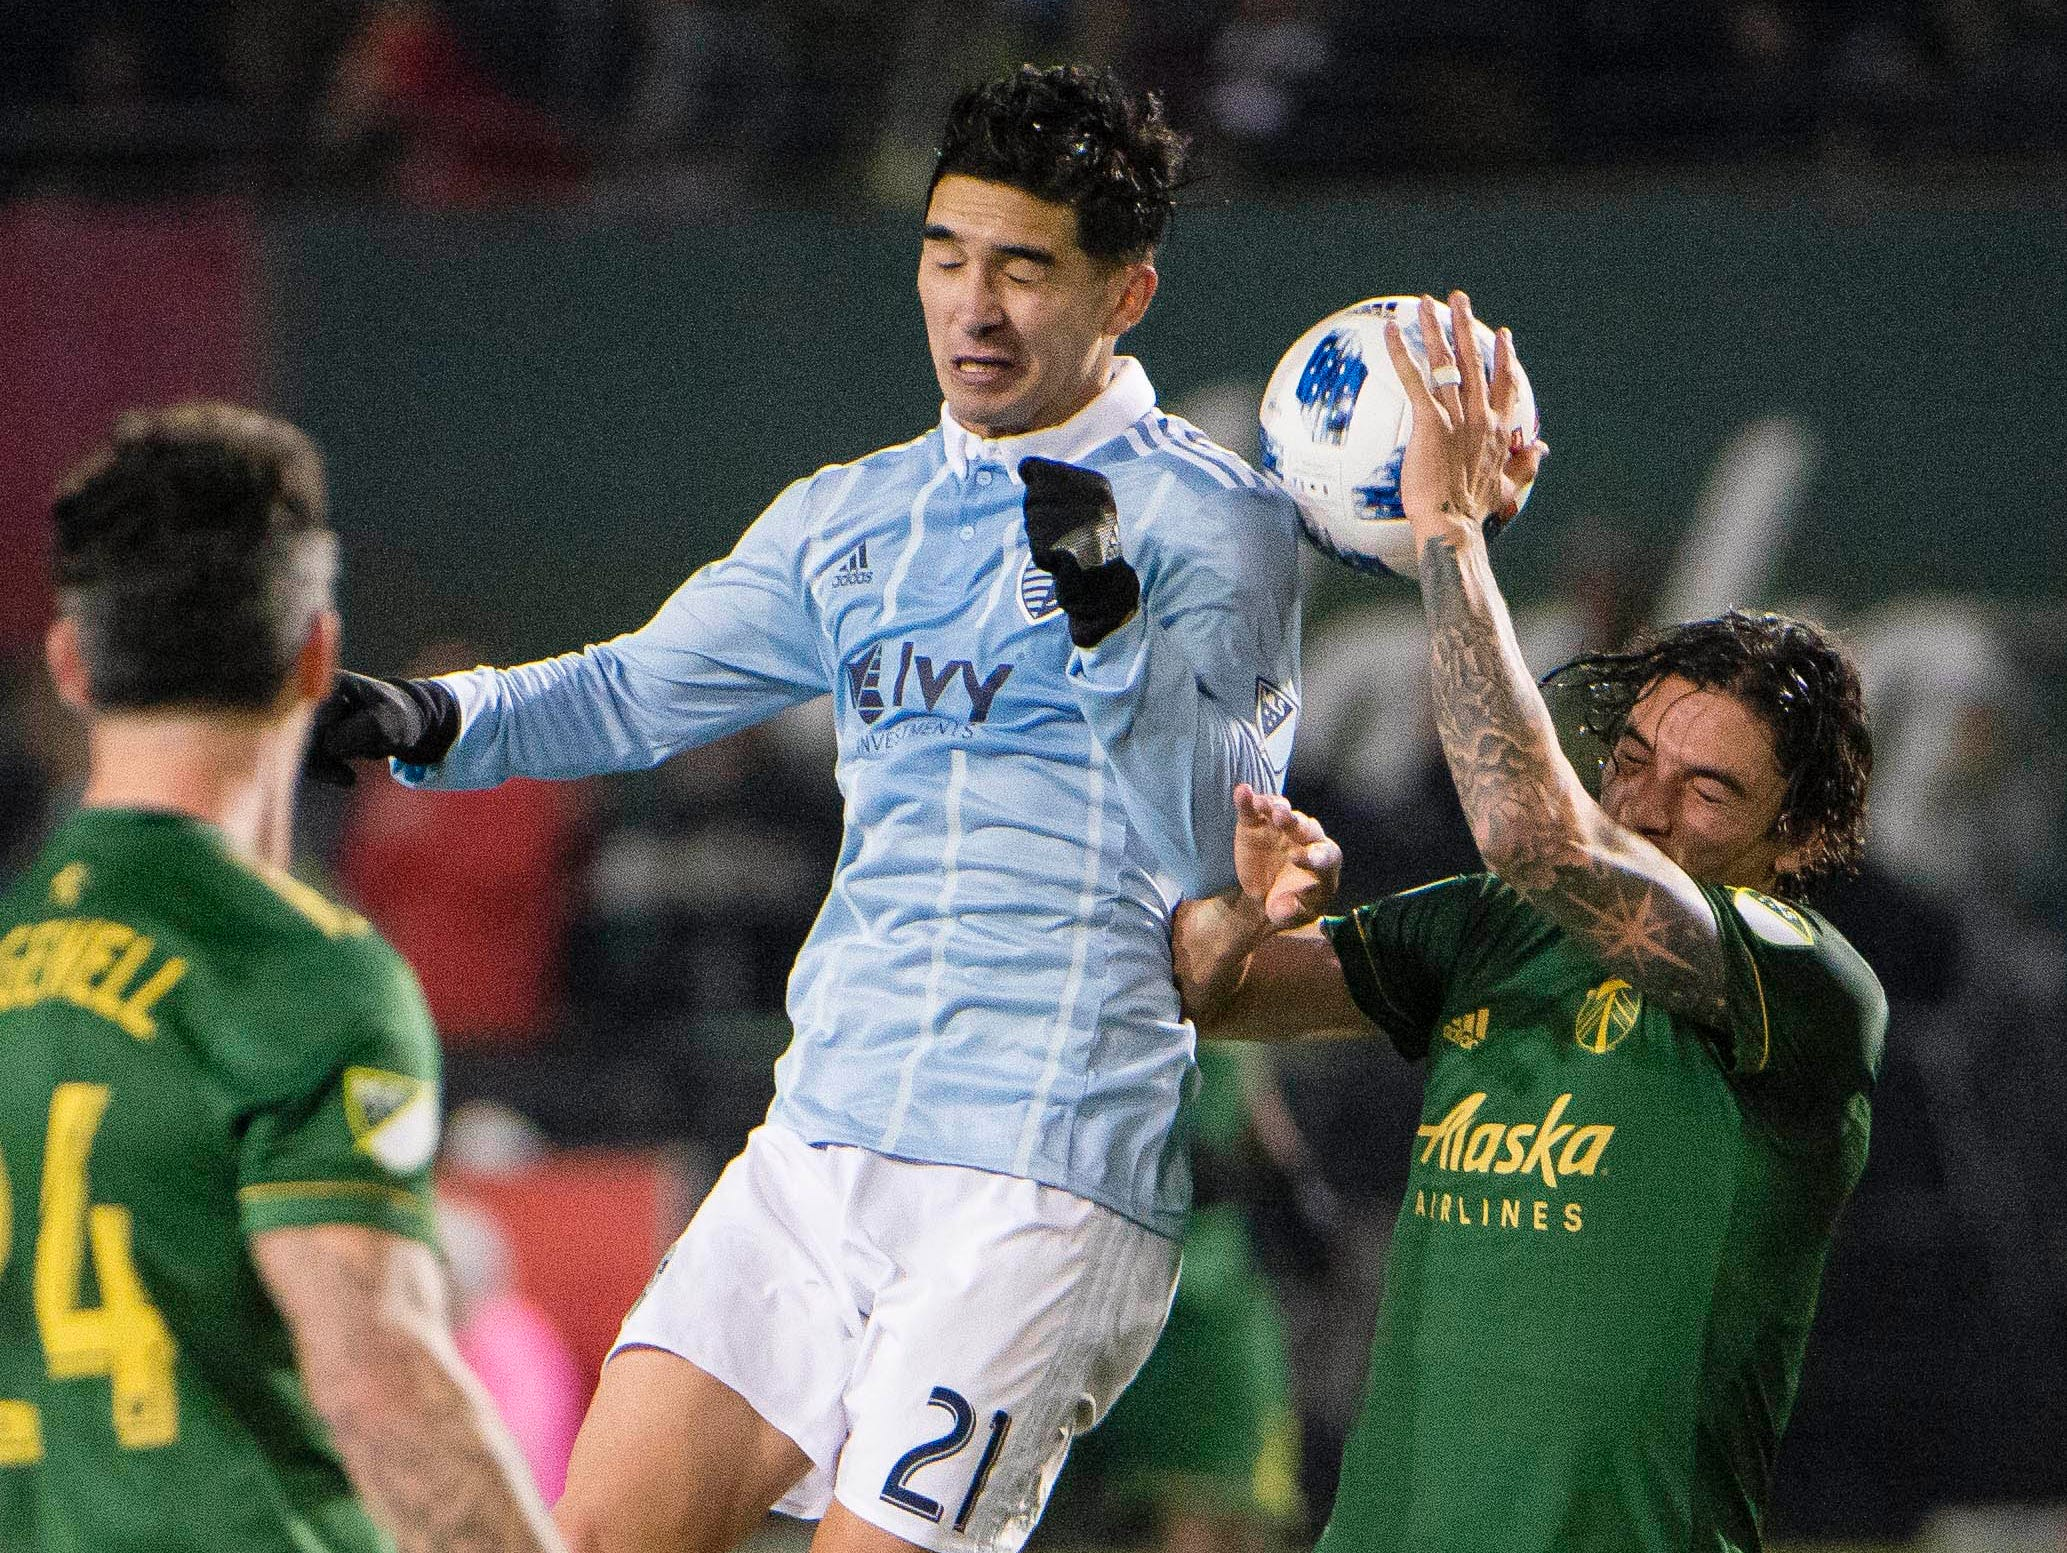 Nov 25, 2018; Portland, OR, USA; Sporting Kansas City midfielder Felipe Gutierrez (21) wins a header against Portland Timbers defender Zarek Valentin (16) during the second half in the first leg of the MLS Western Conference Championship at Providence Park. The game ended tied 0-0. Mandatory Credit: Troy Wayrynen-USA TODAY Sports